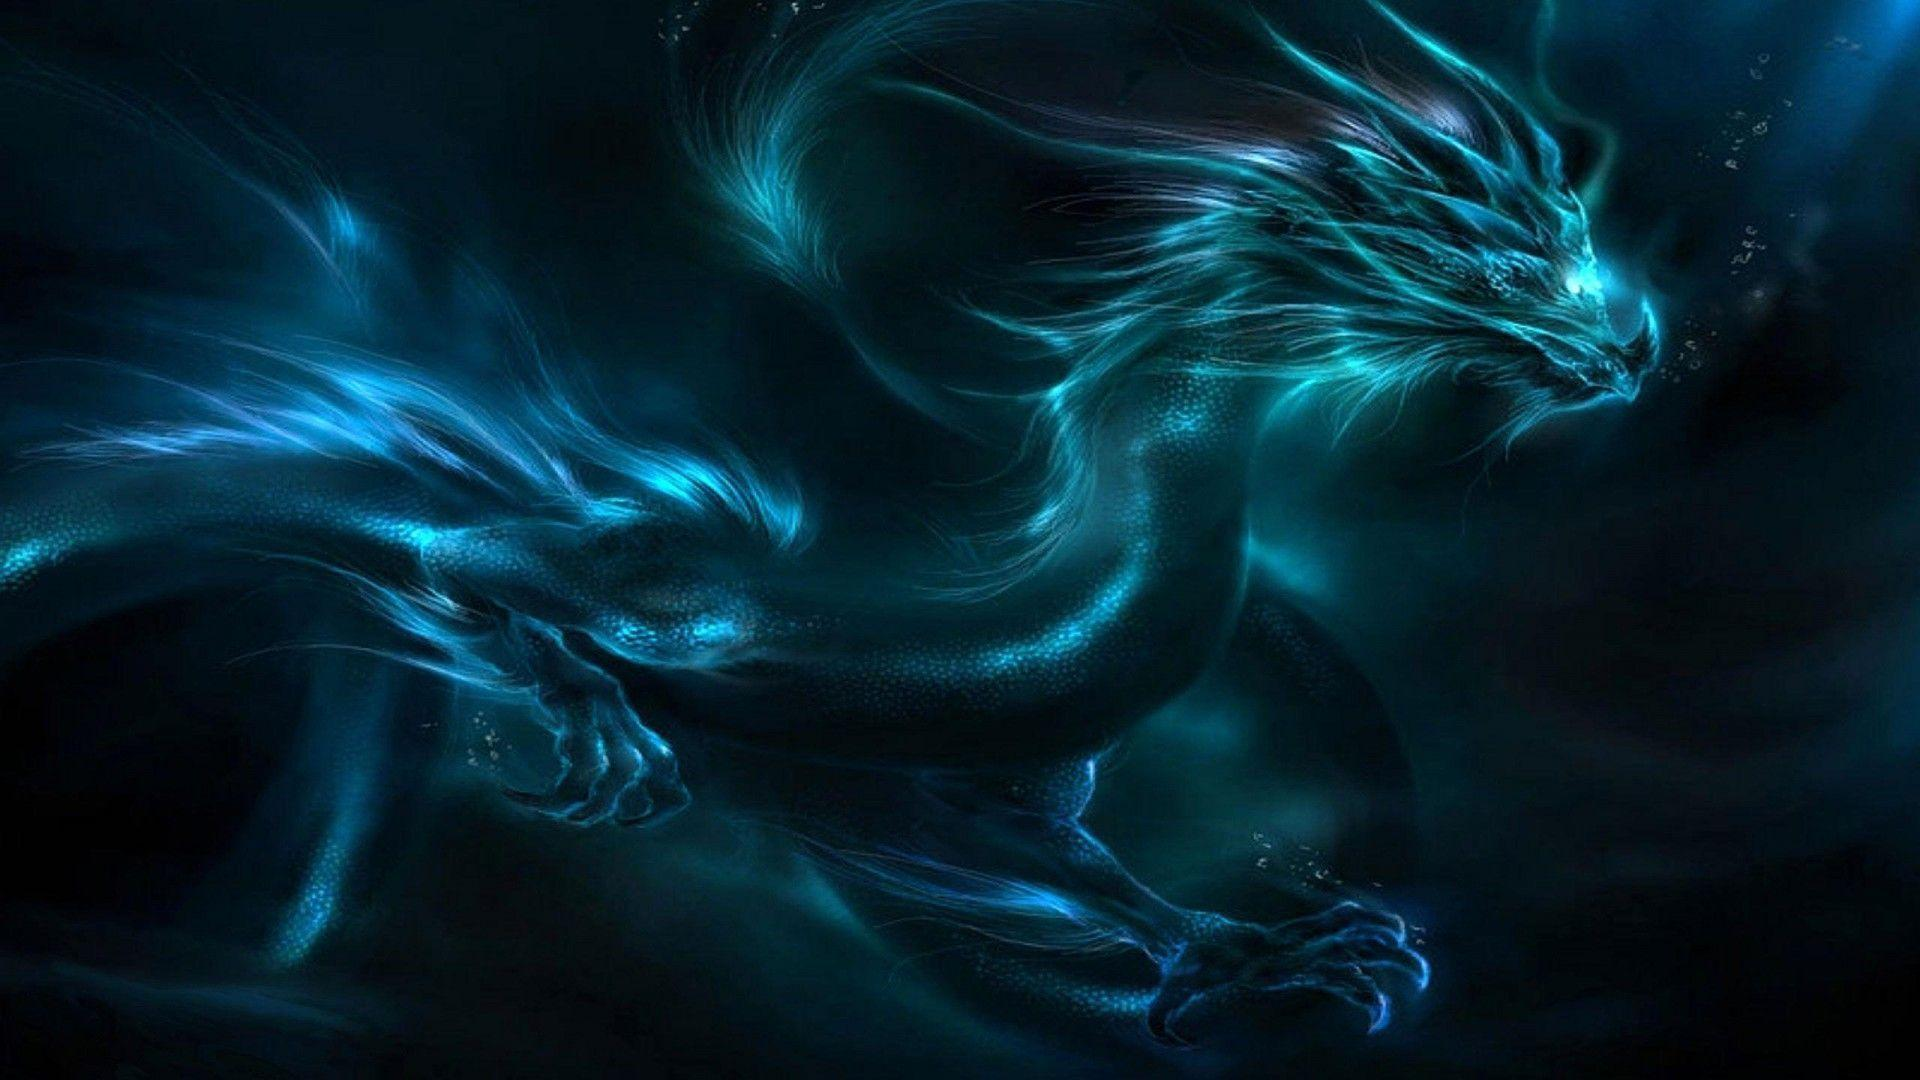 Cool Dragon Backgrounds 1920x1080